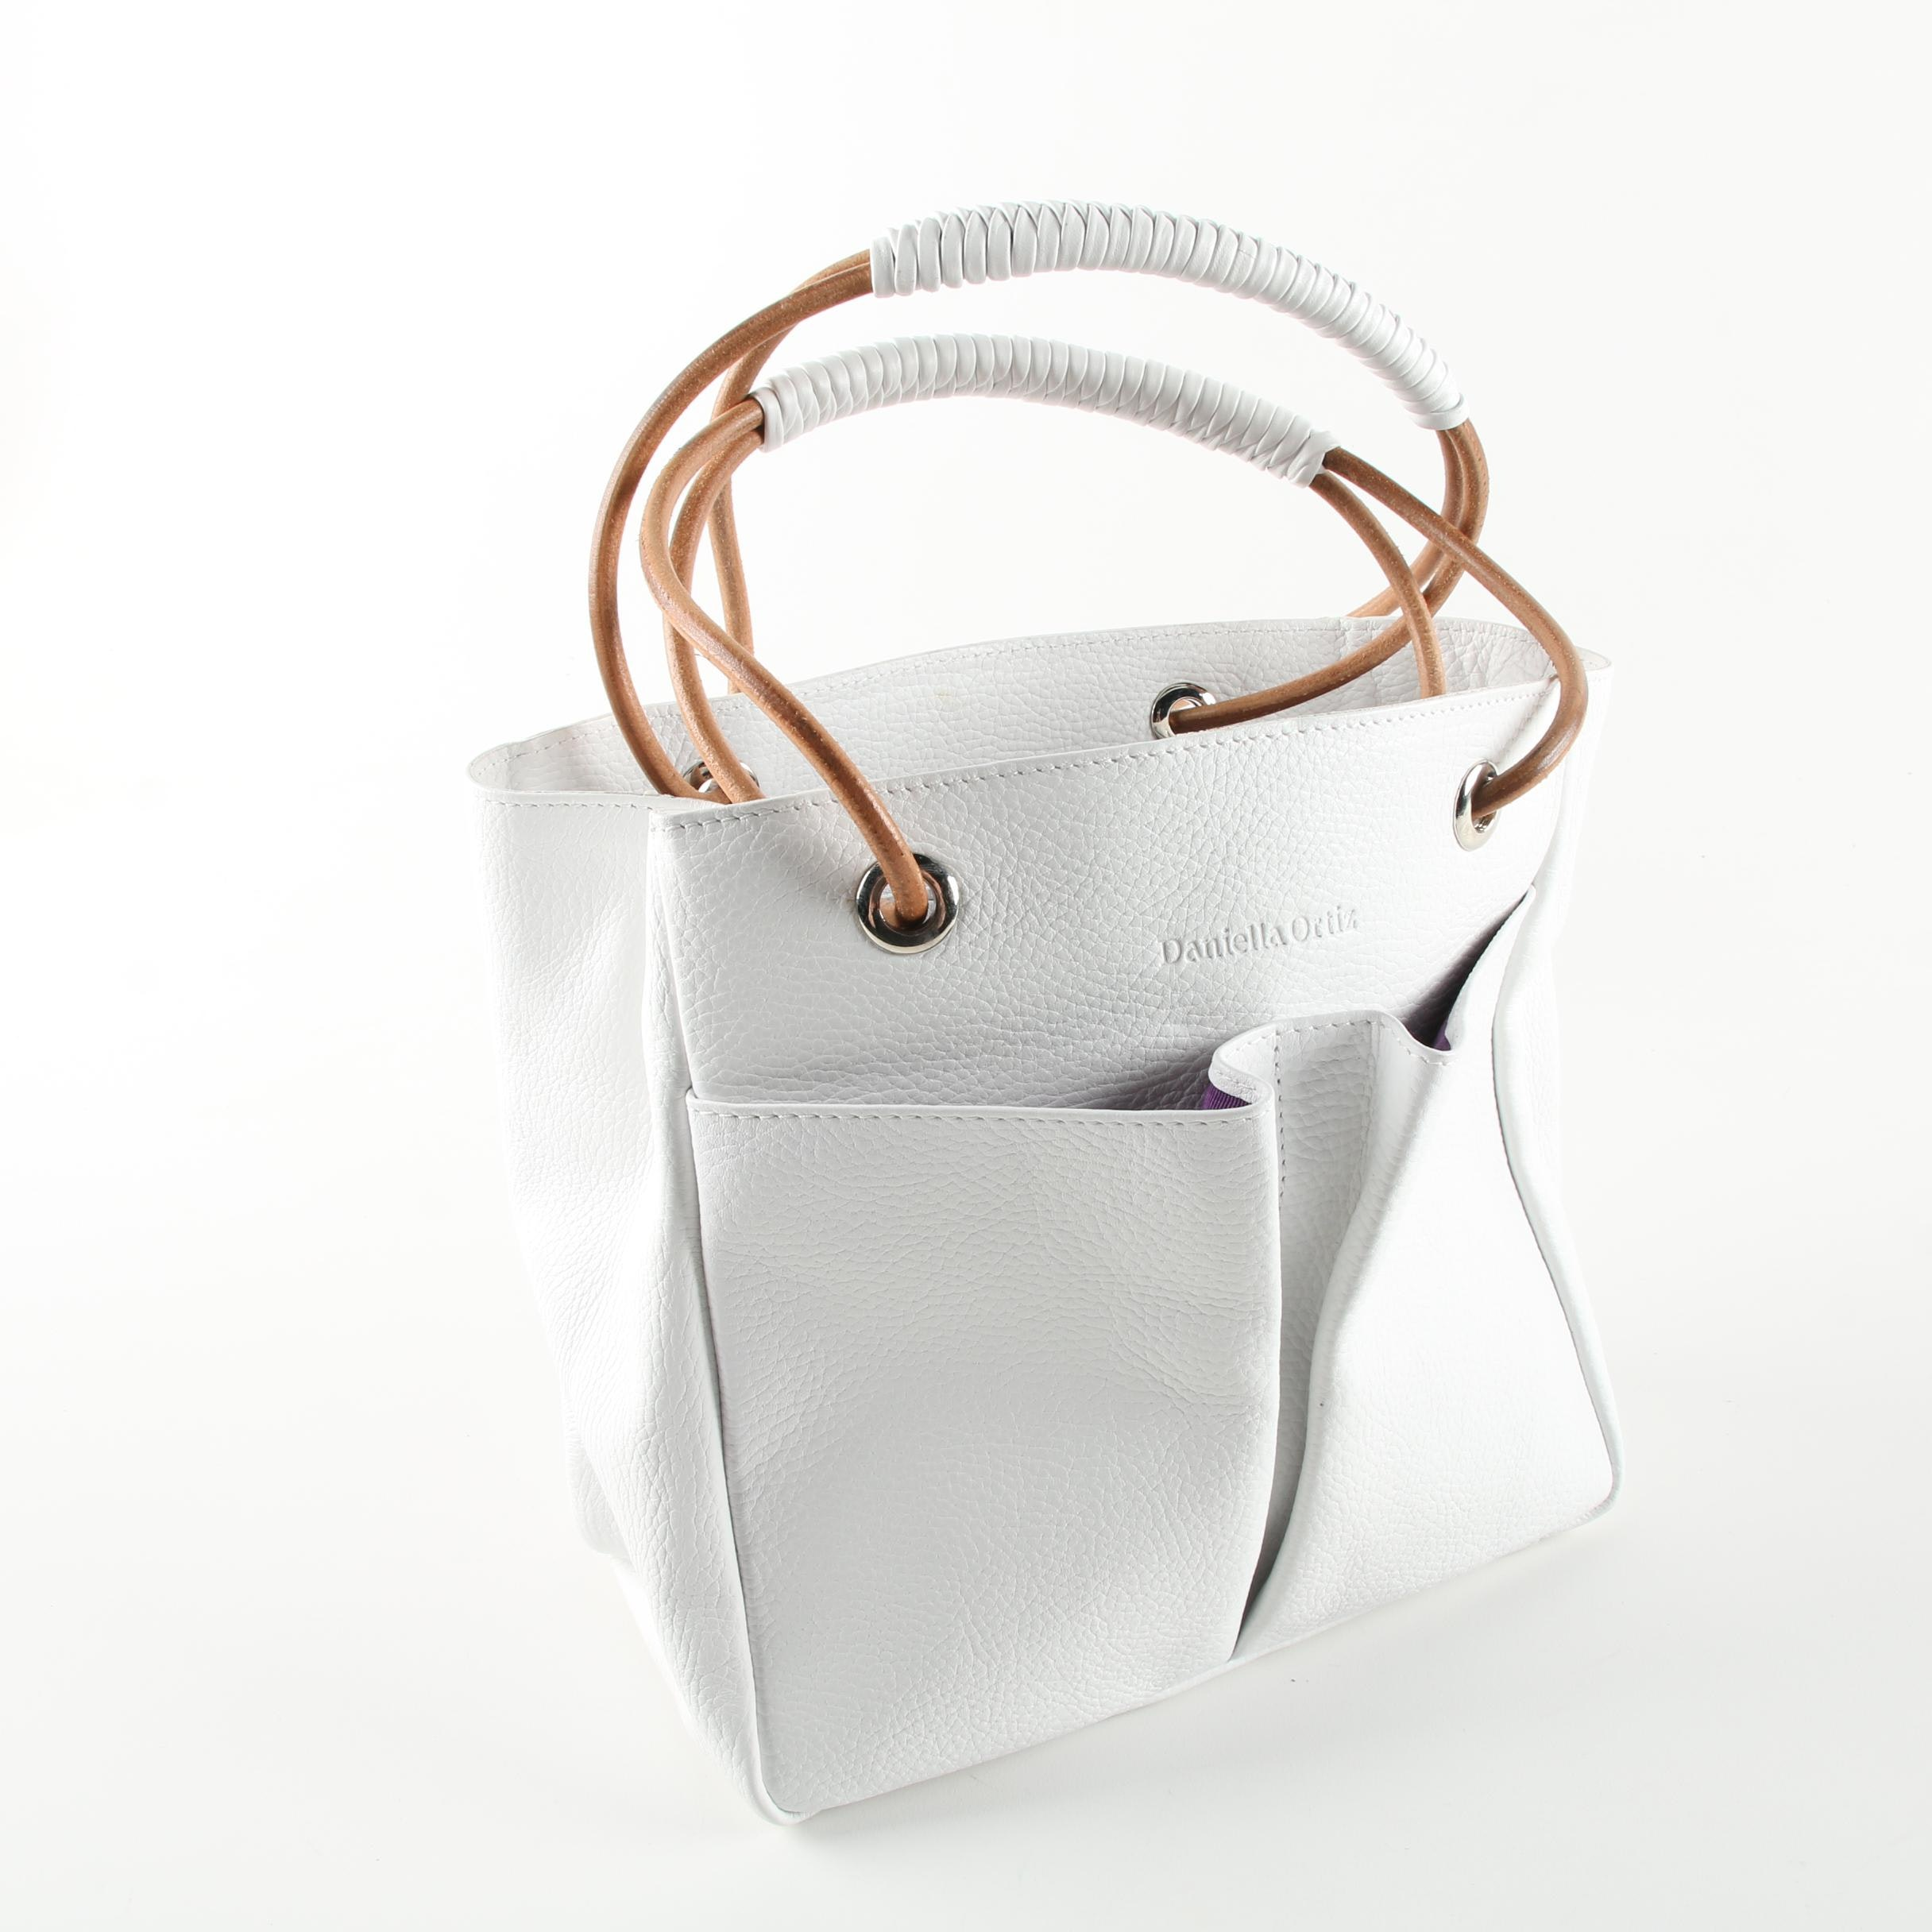 Daniella Ortiz Luz White Leather Handbag